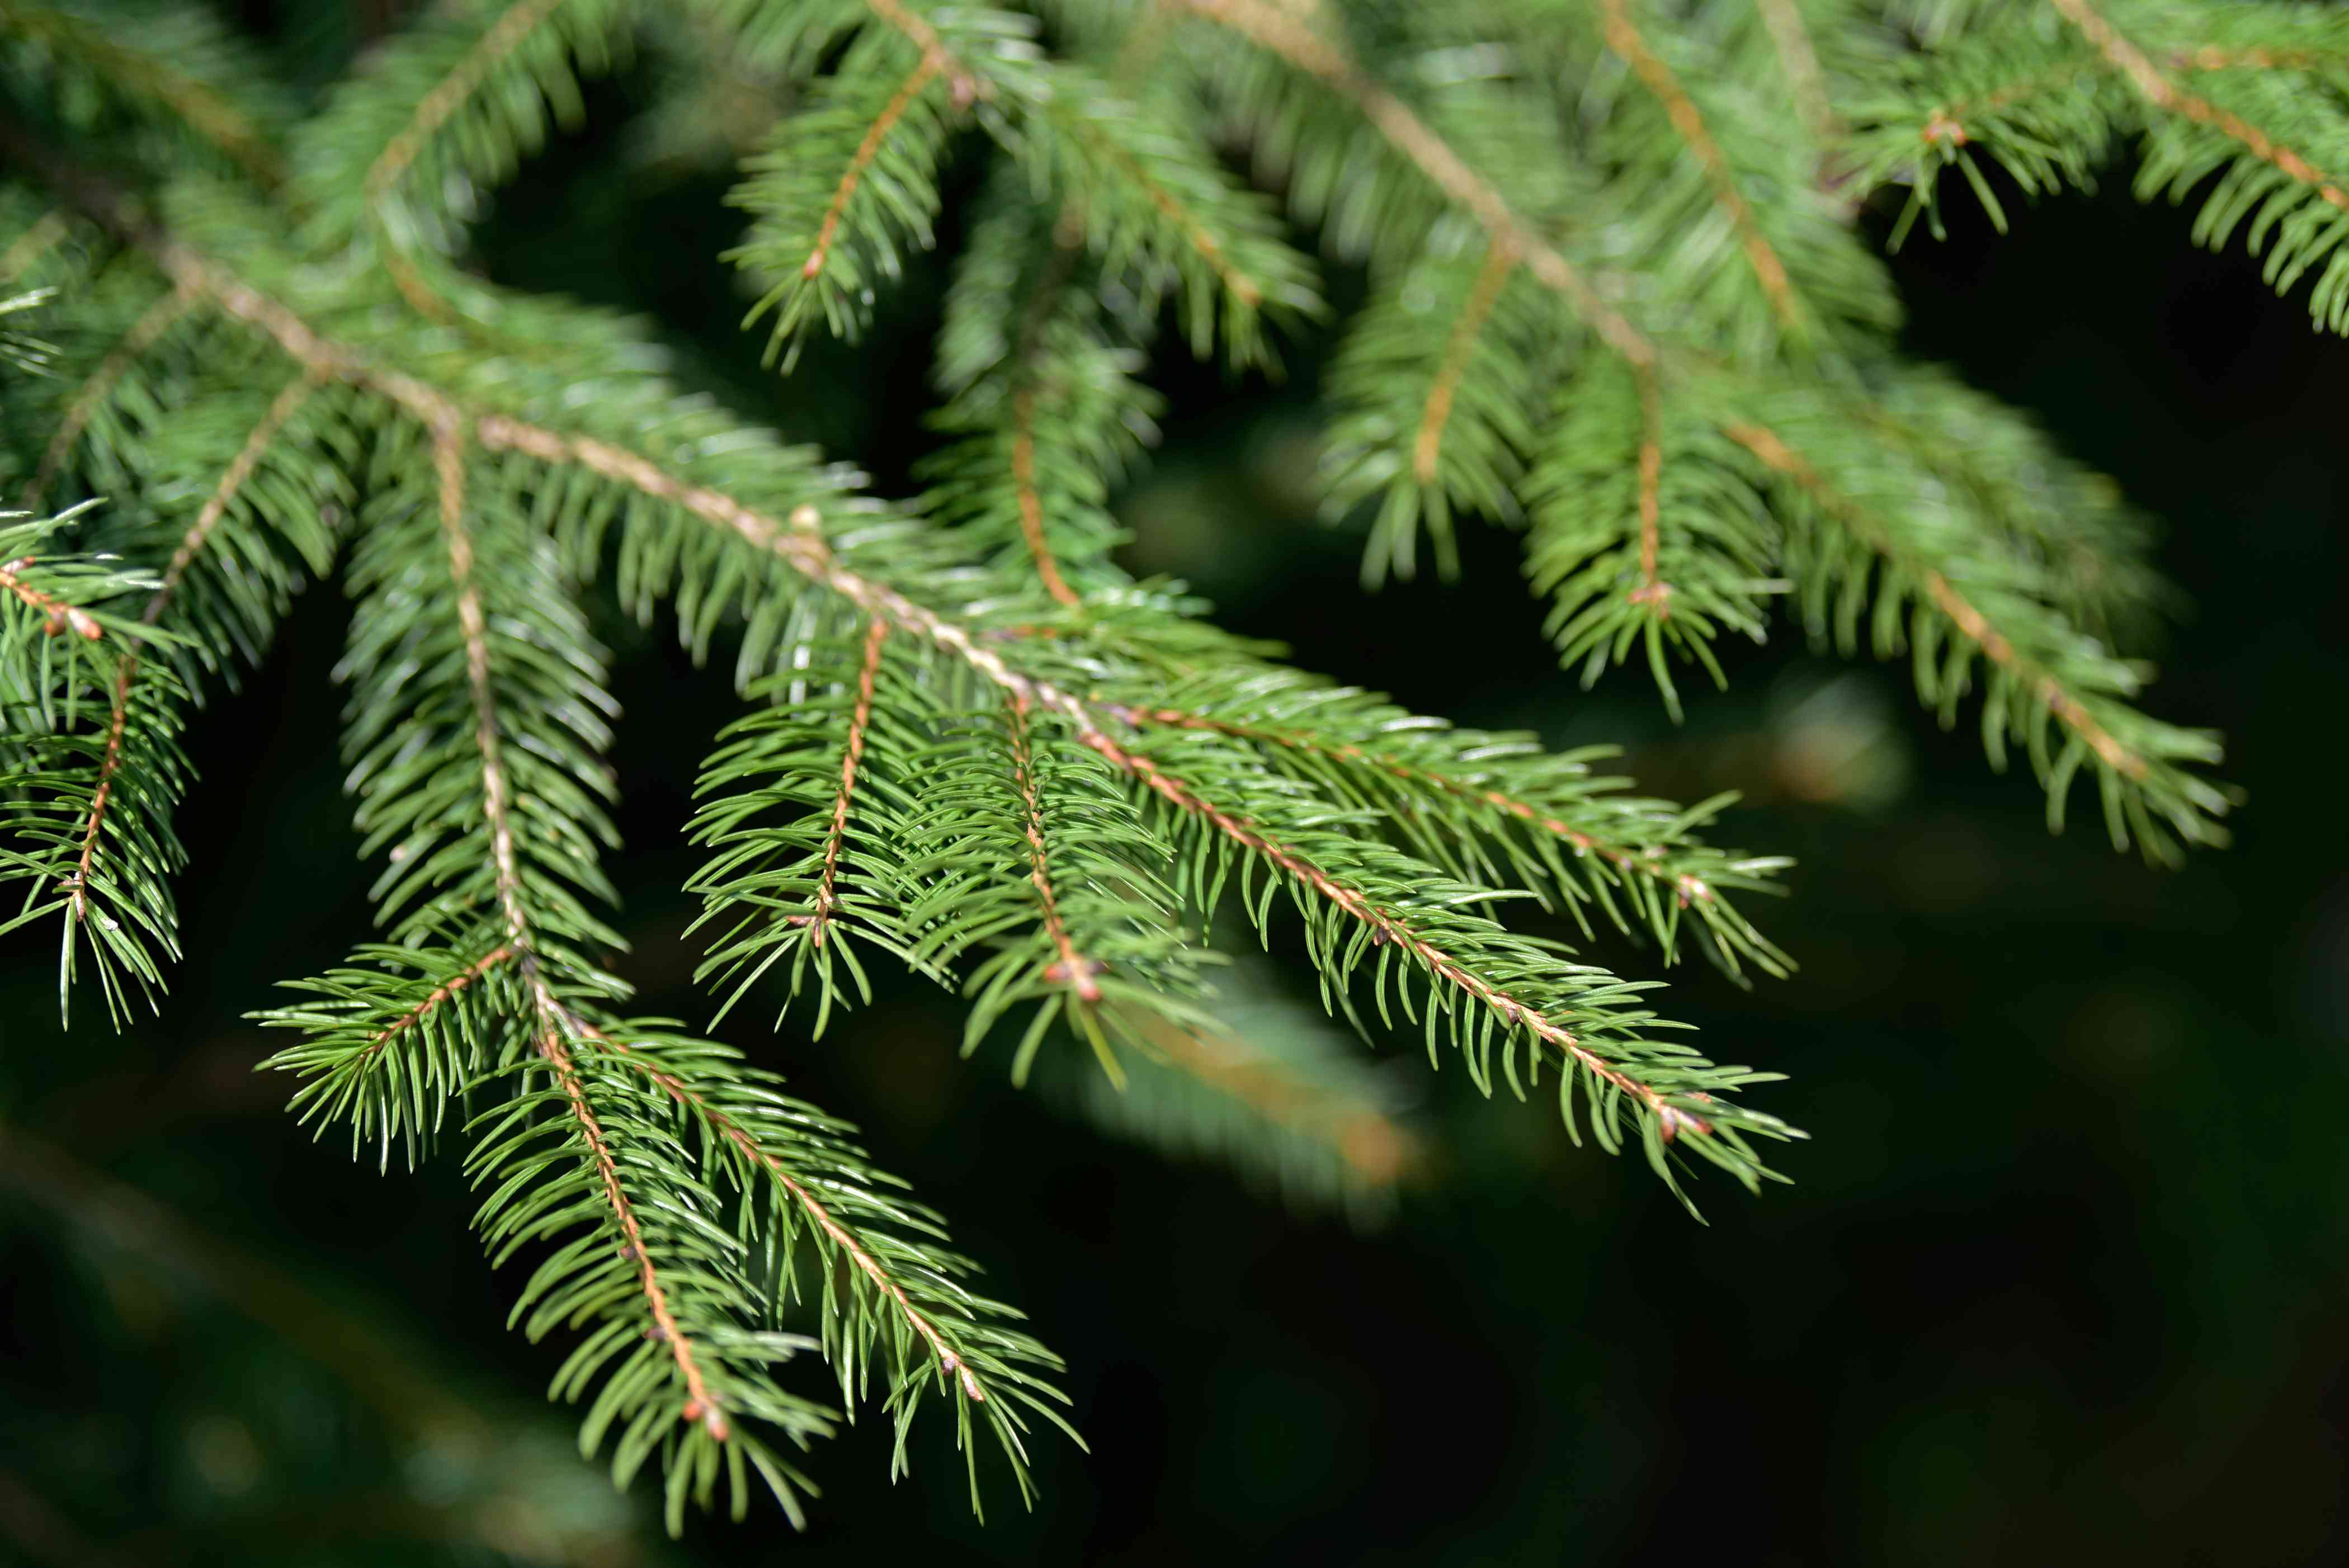 Norway spruce tree branch with short spikey needles closeup